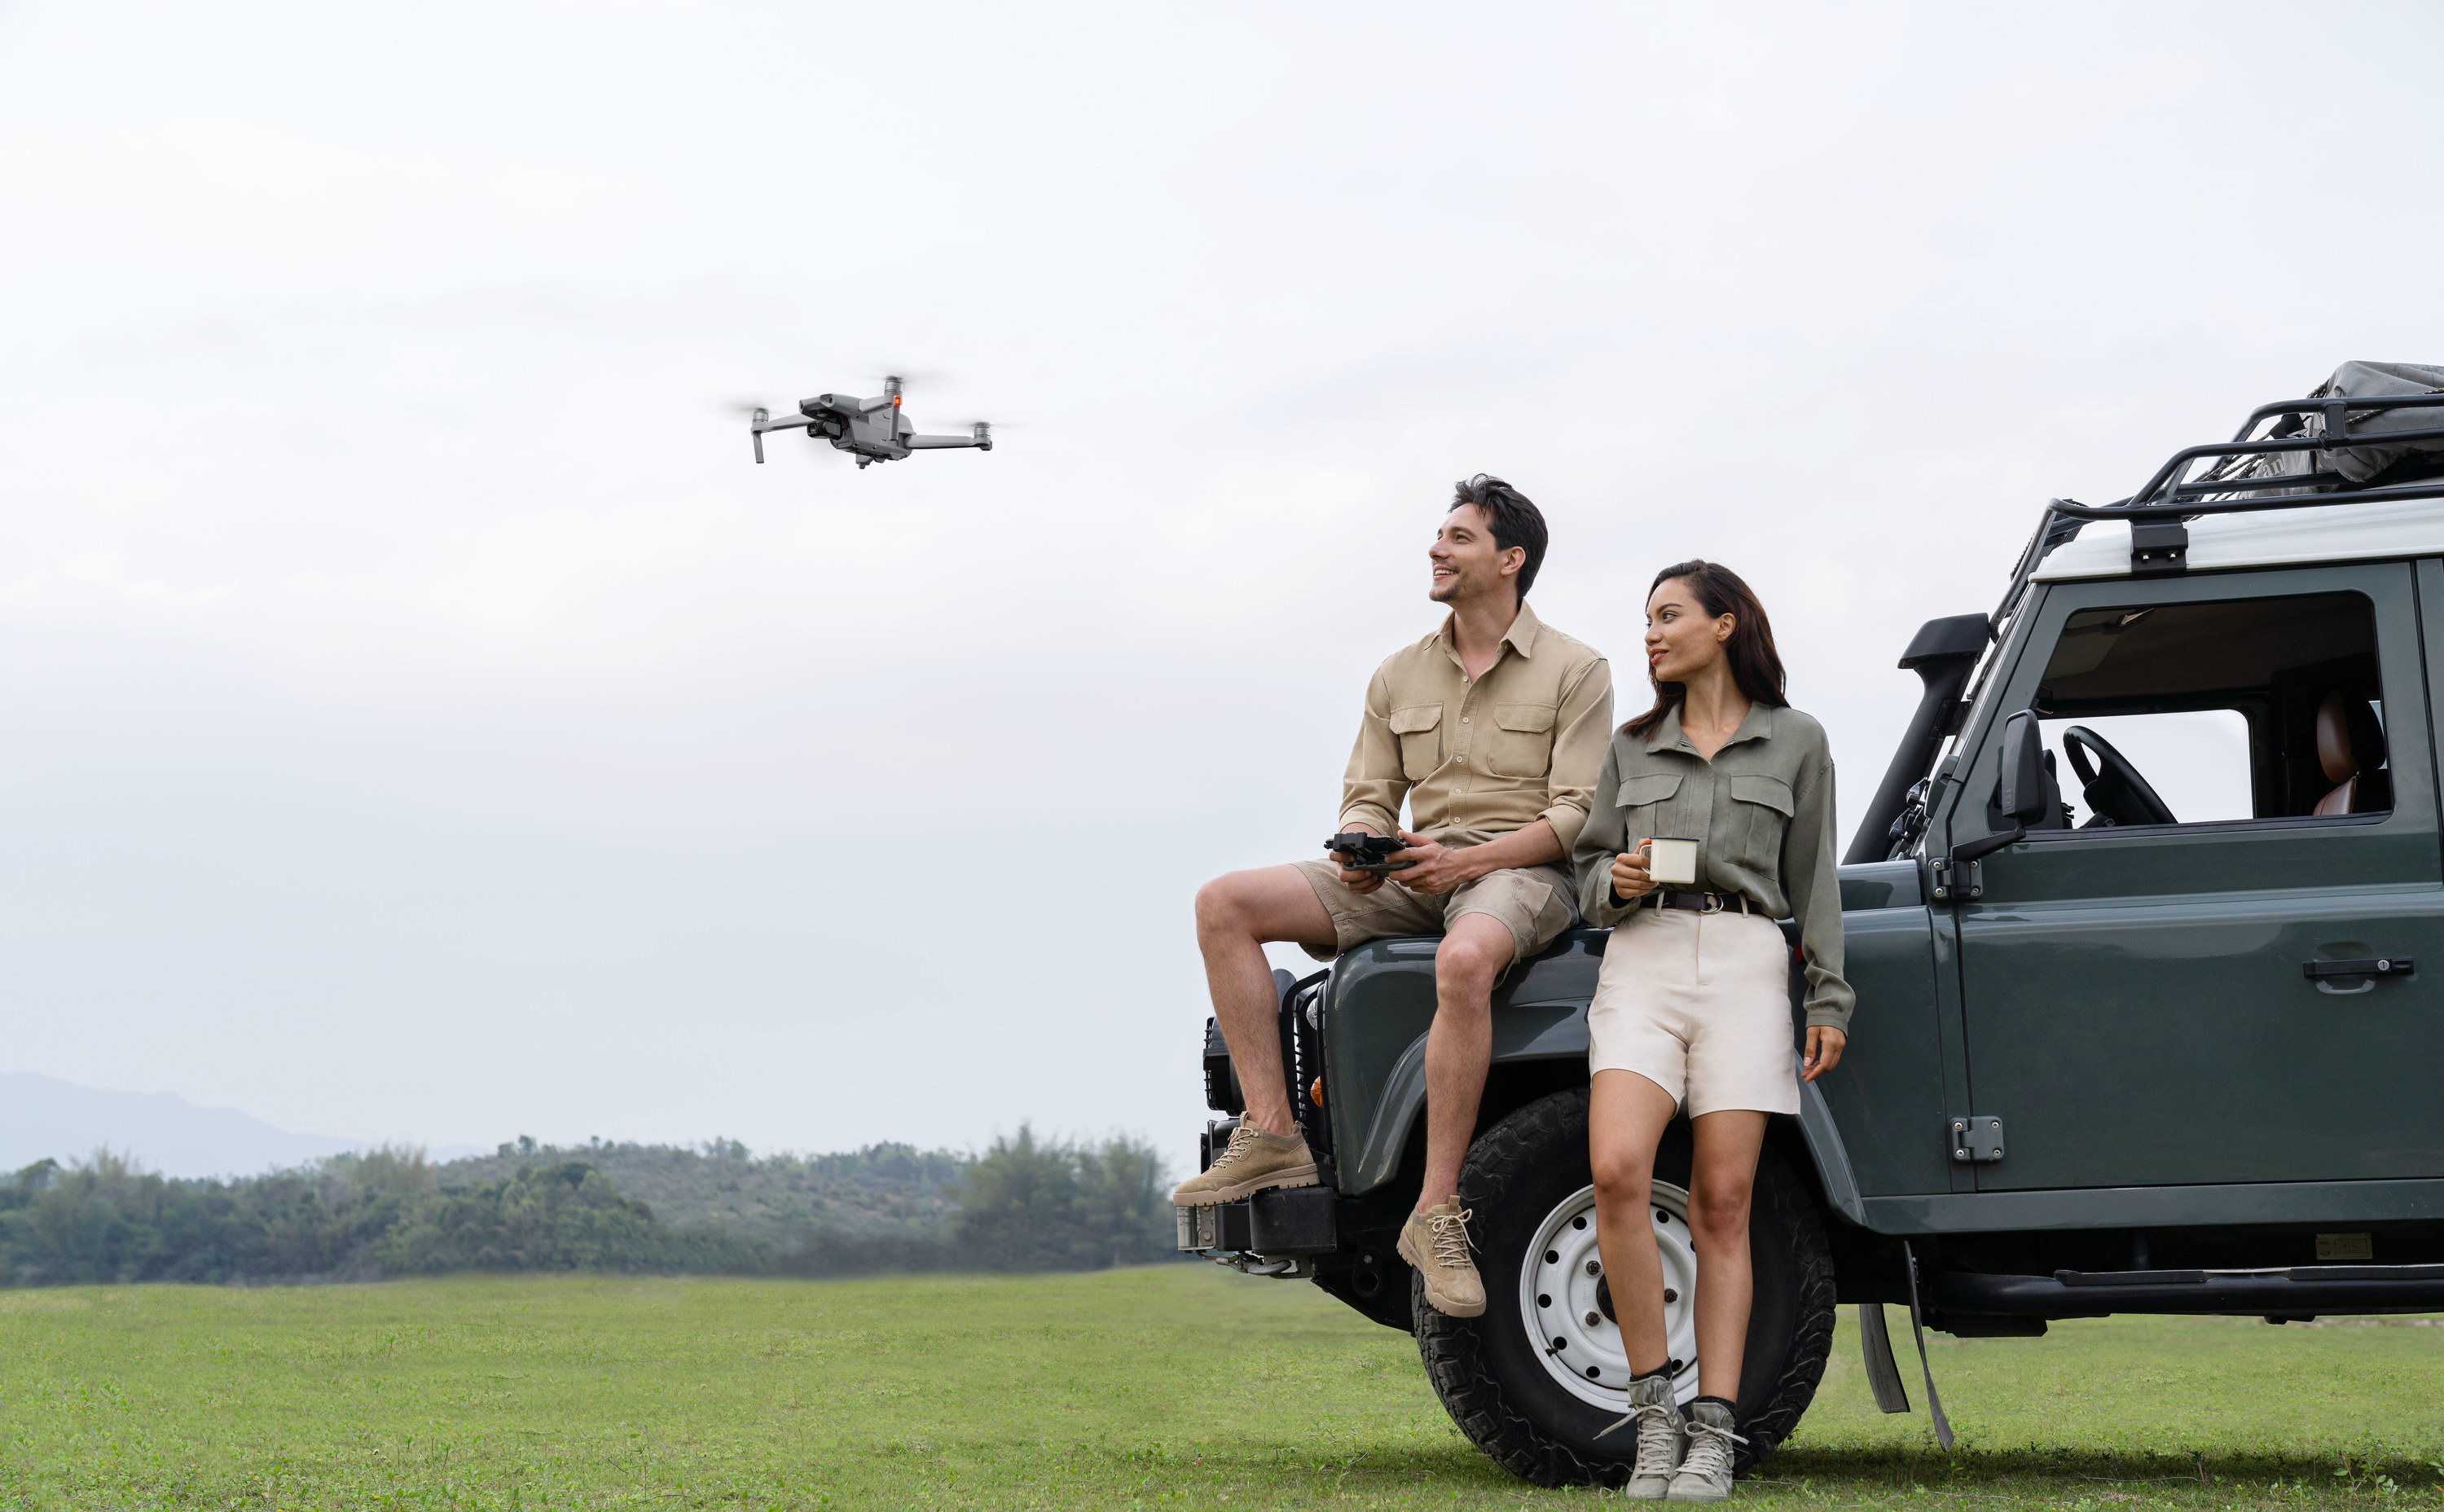 Models using the drone with remote control